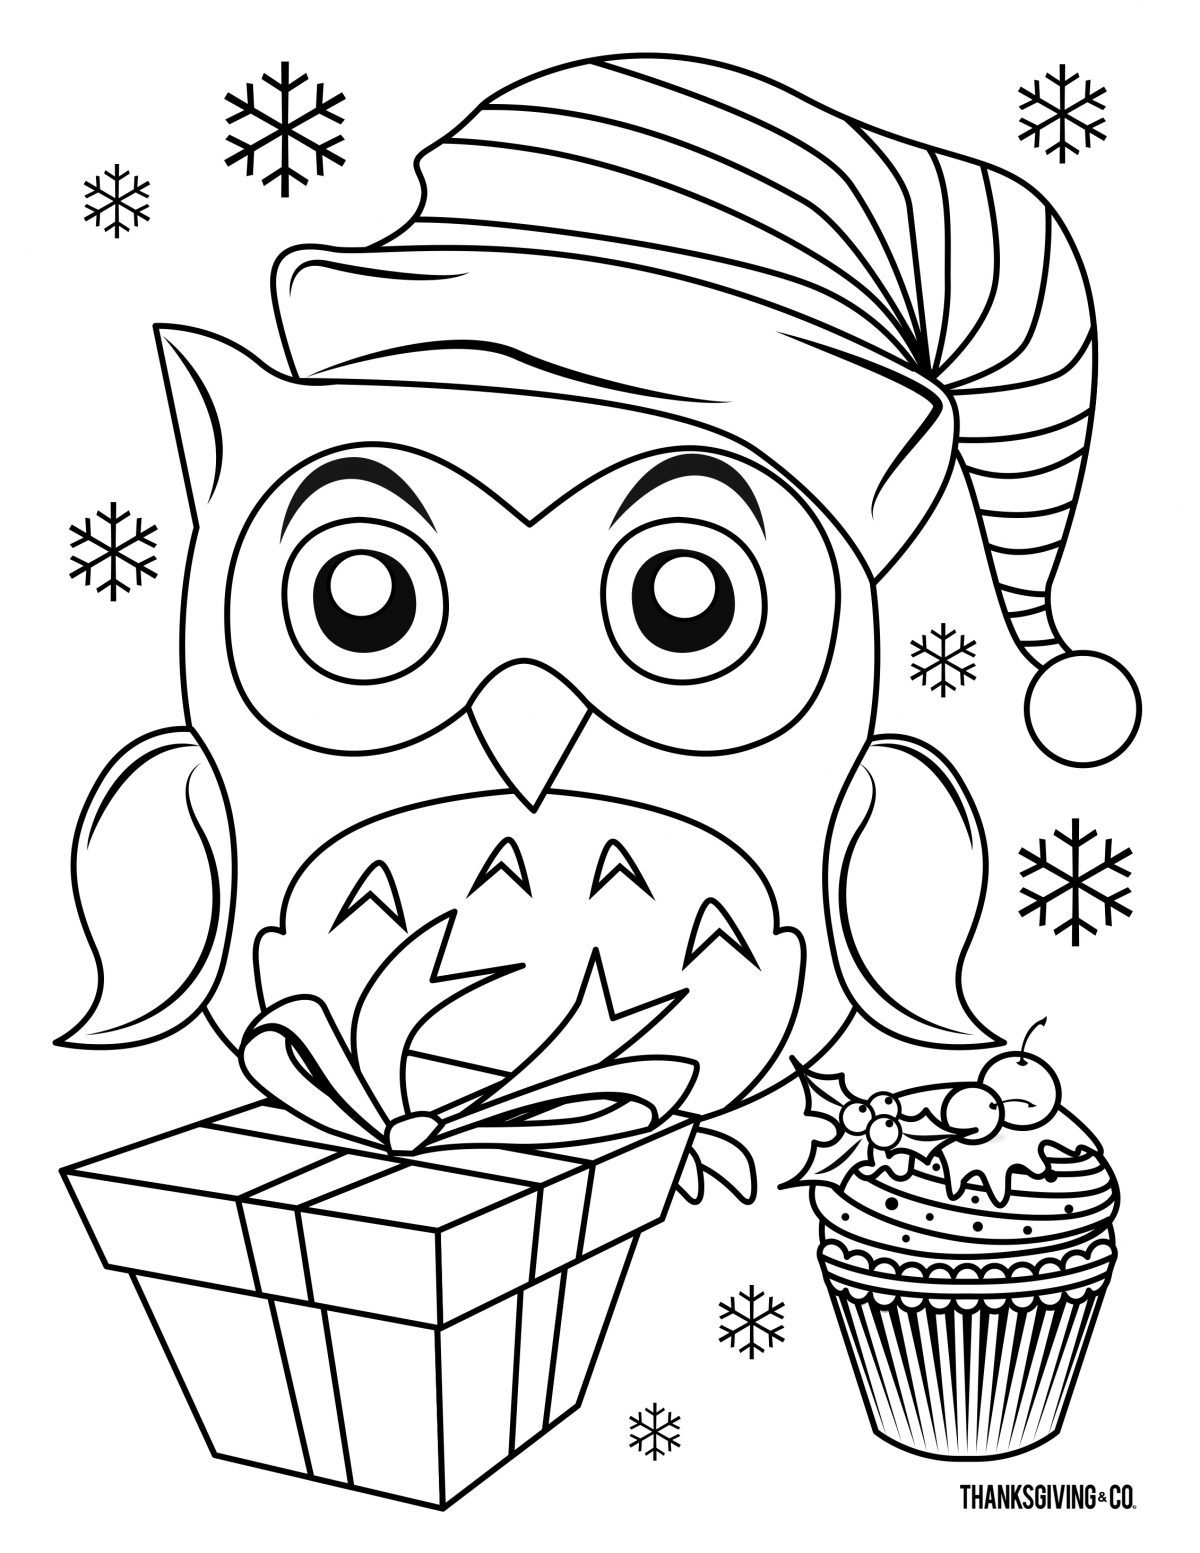 Christmas Color Pages For Kids Coloring Pages Coloring Ideas Page Christmas Pages Book Images